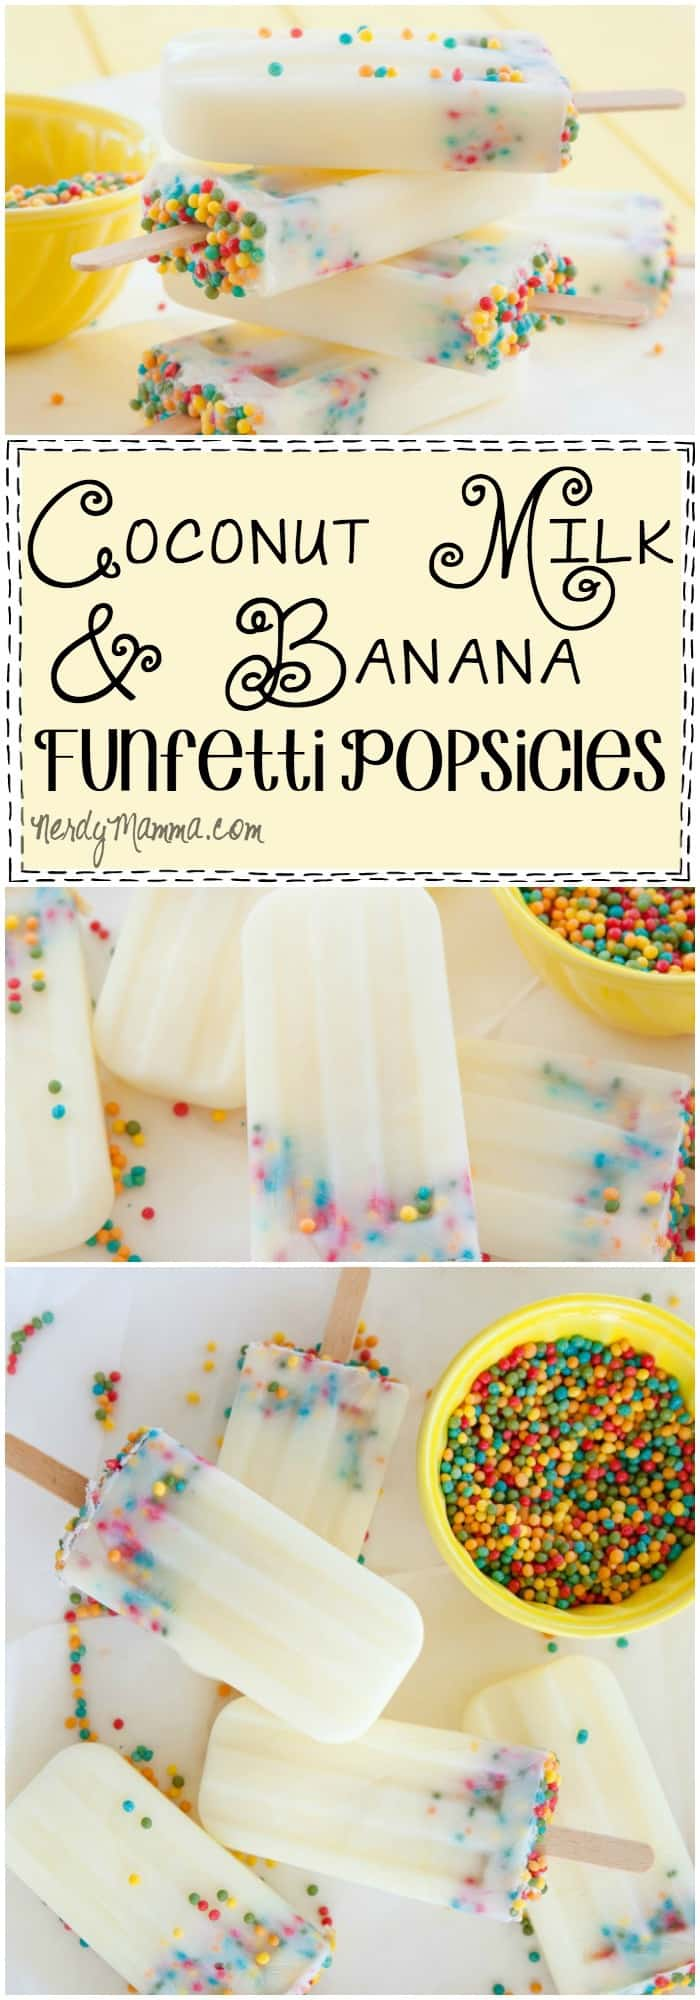 I love this recipe for coconut milk and banana funfetti popsicles. They look so yummy--and the directions are so easy. I can't wait for summer to try these!